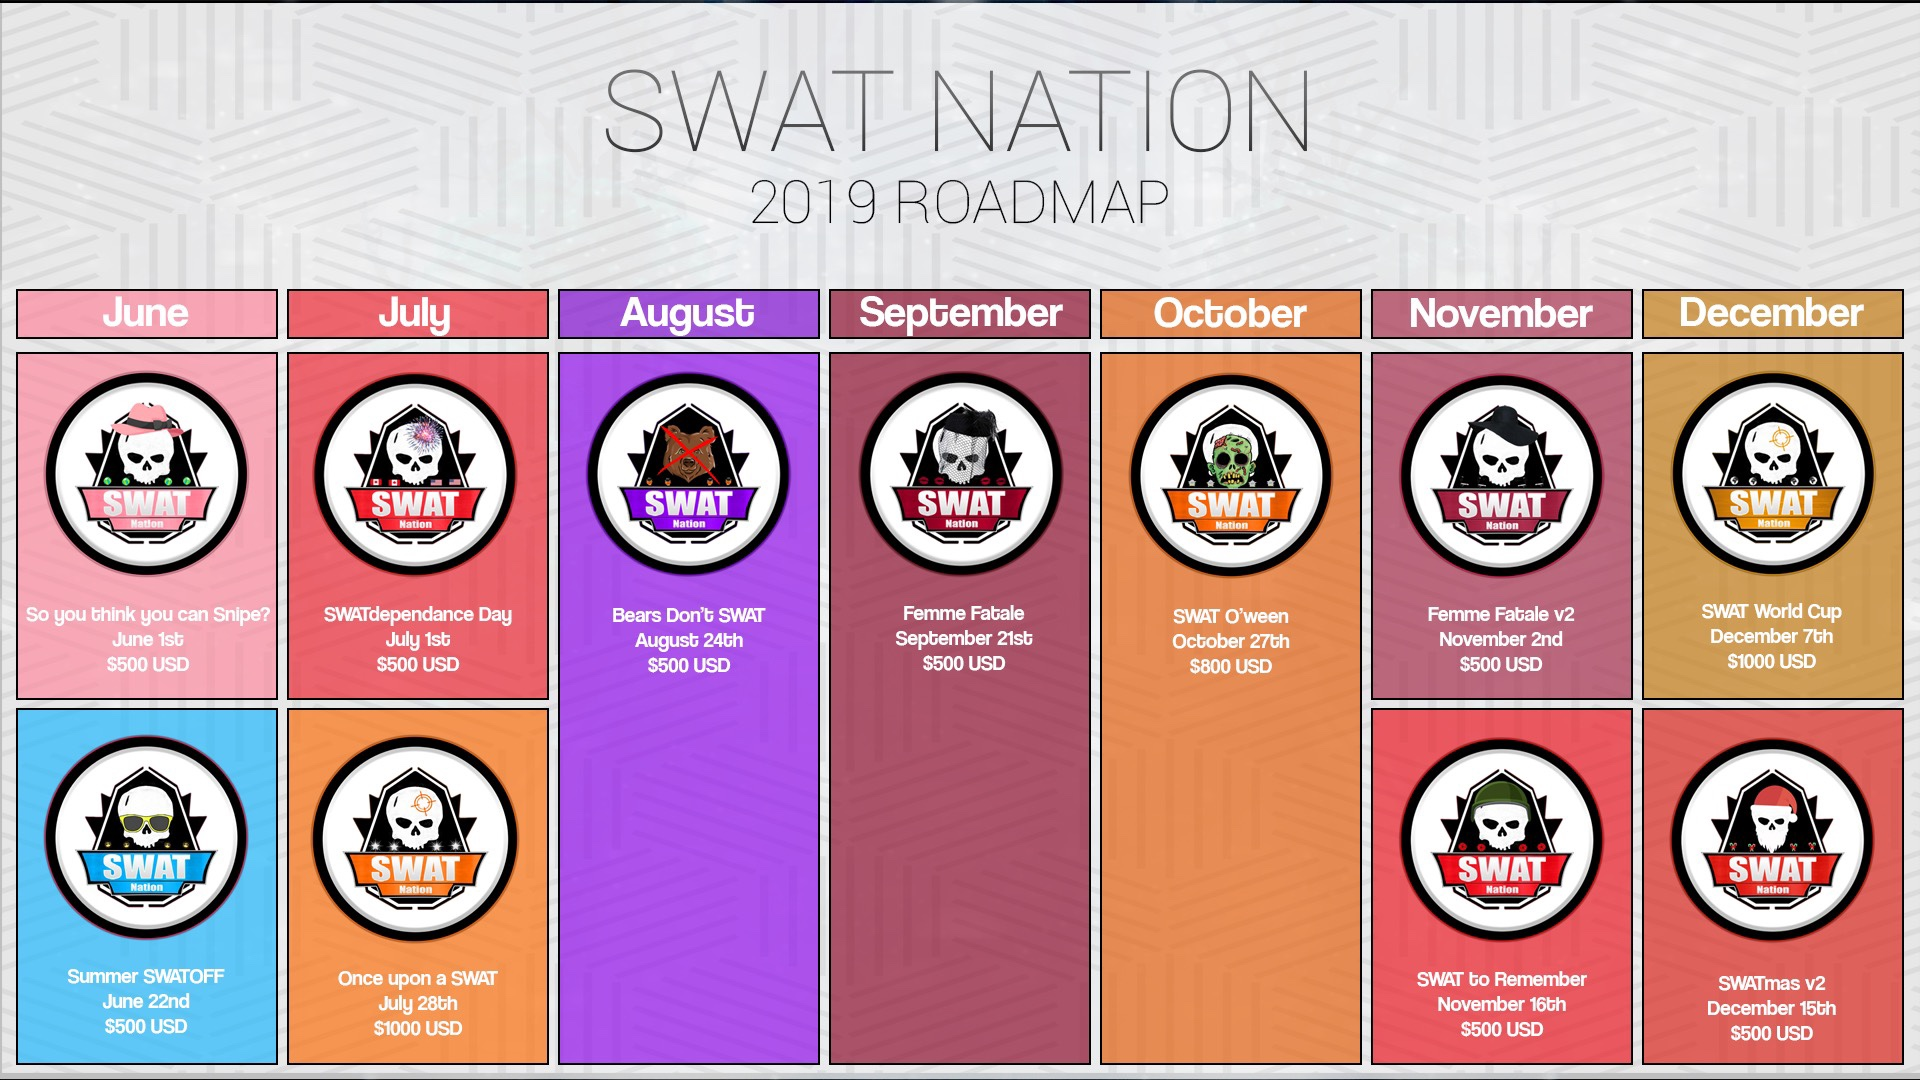 SWAT Nation's Roadmap for the rest of 2019. Dates are tentative and are subject to change.